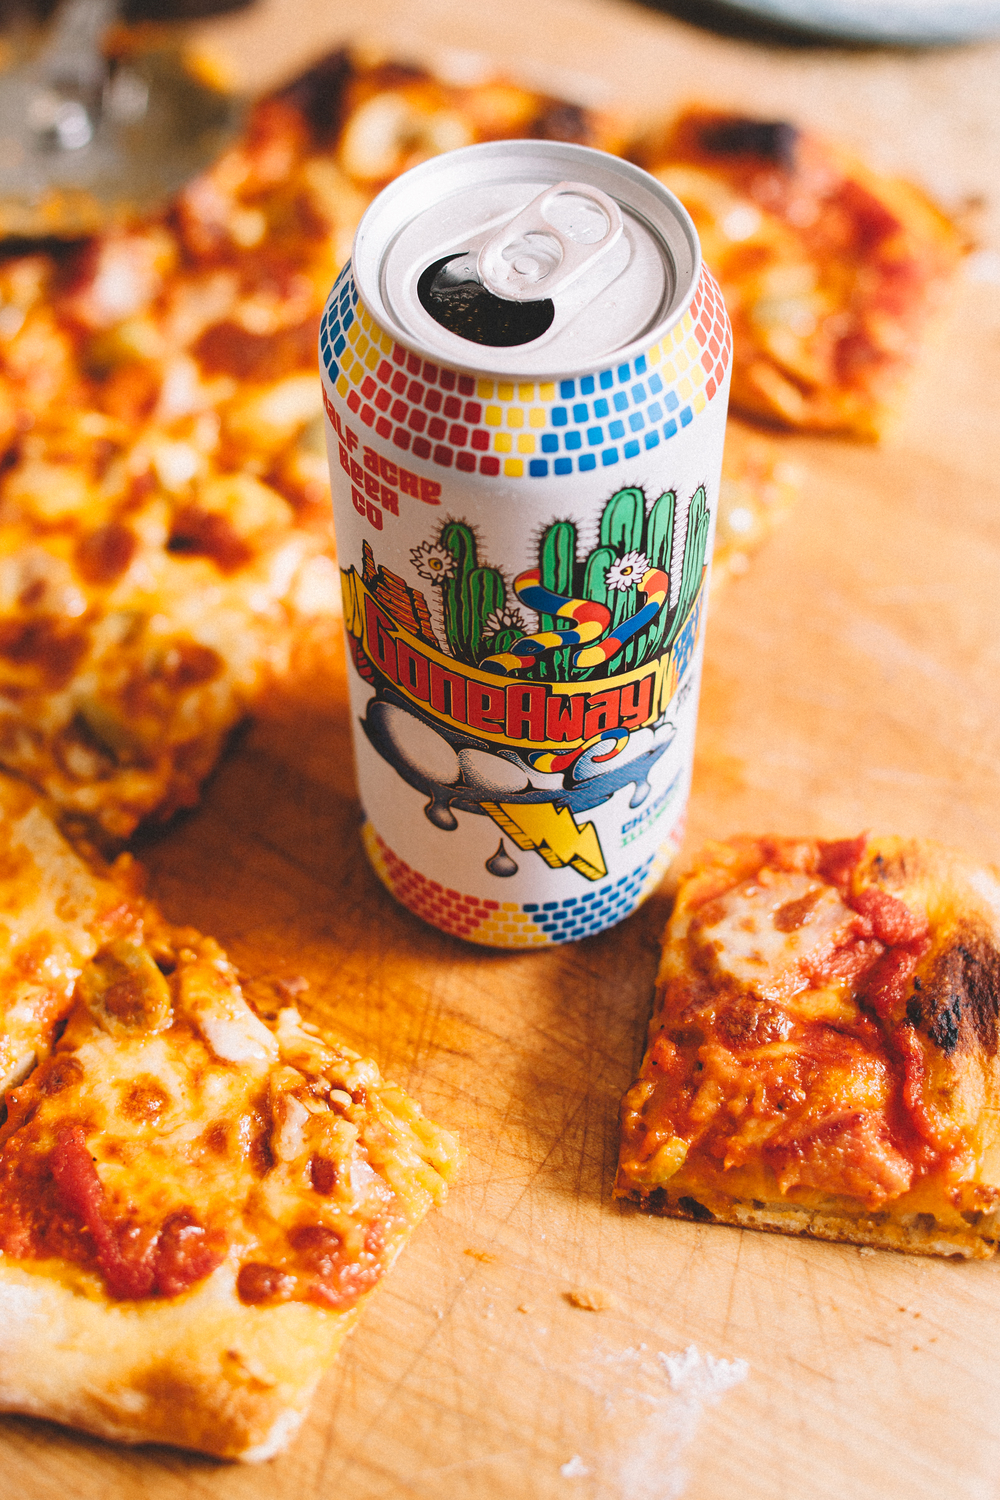 And now it's official, the last of our beer from Chicago (and some delicious homemade pizza).